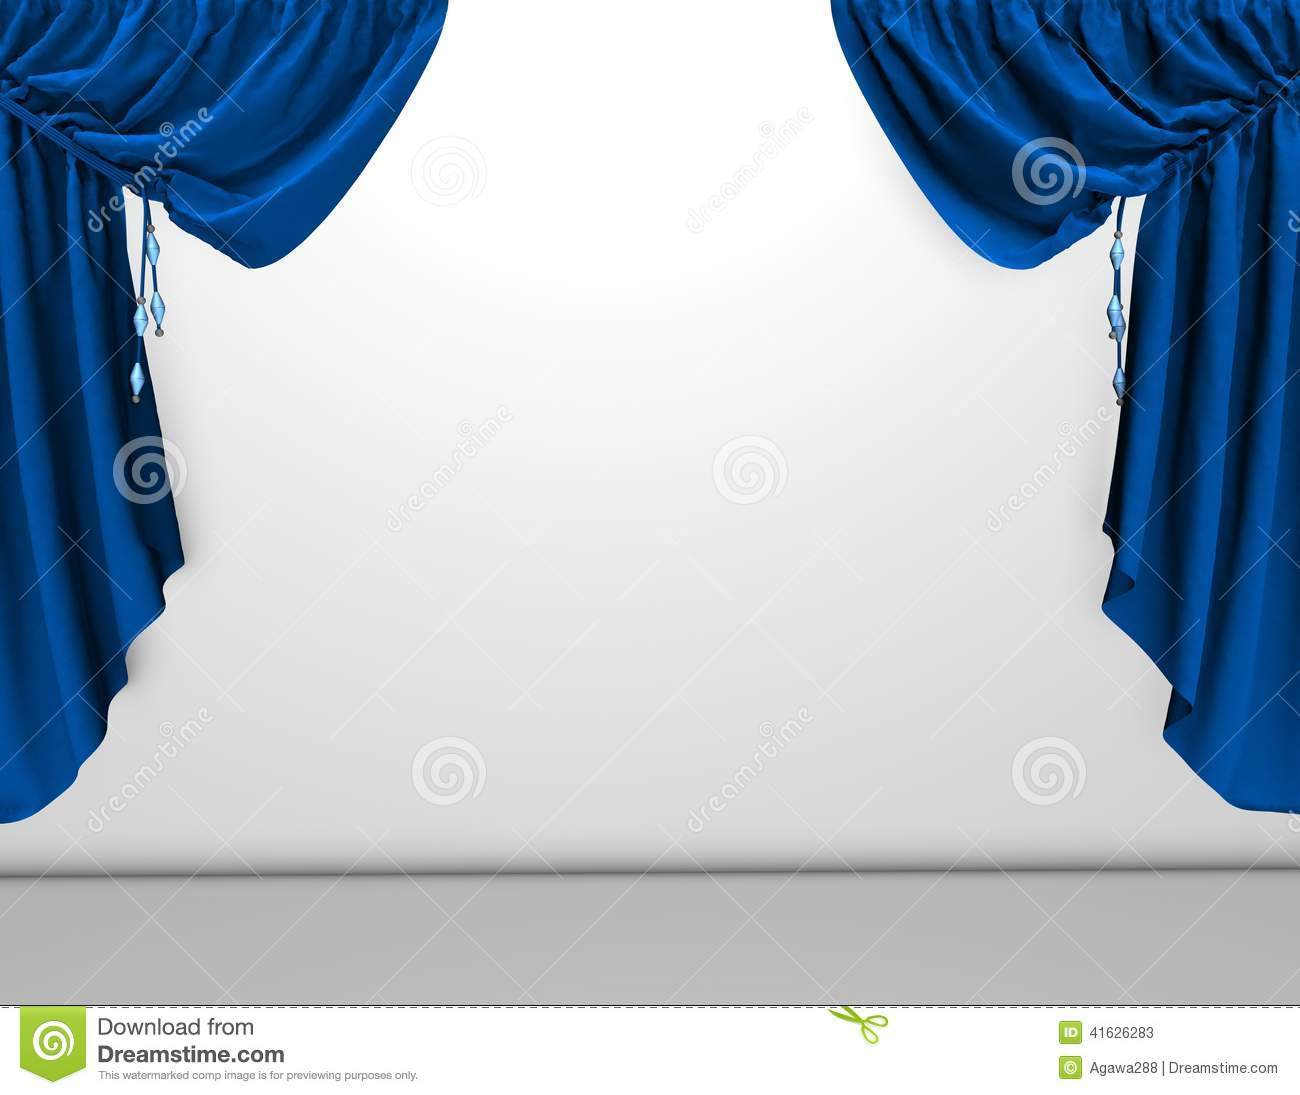 Background With Blue Velvet Curtains And Empty White Wall